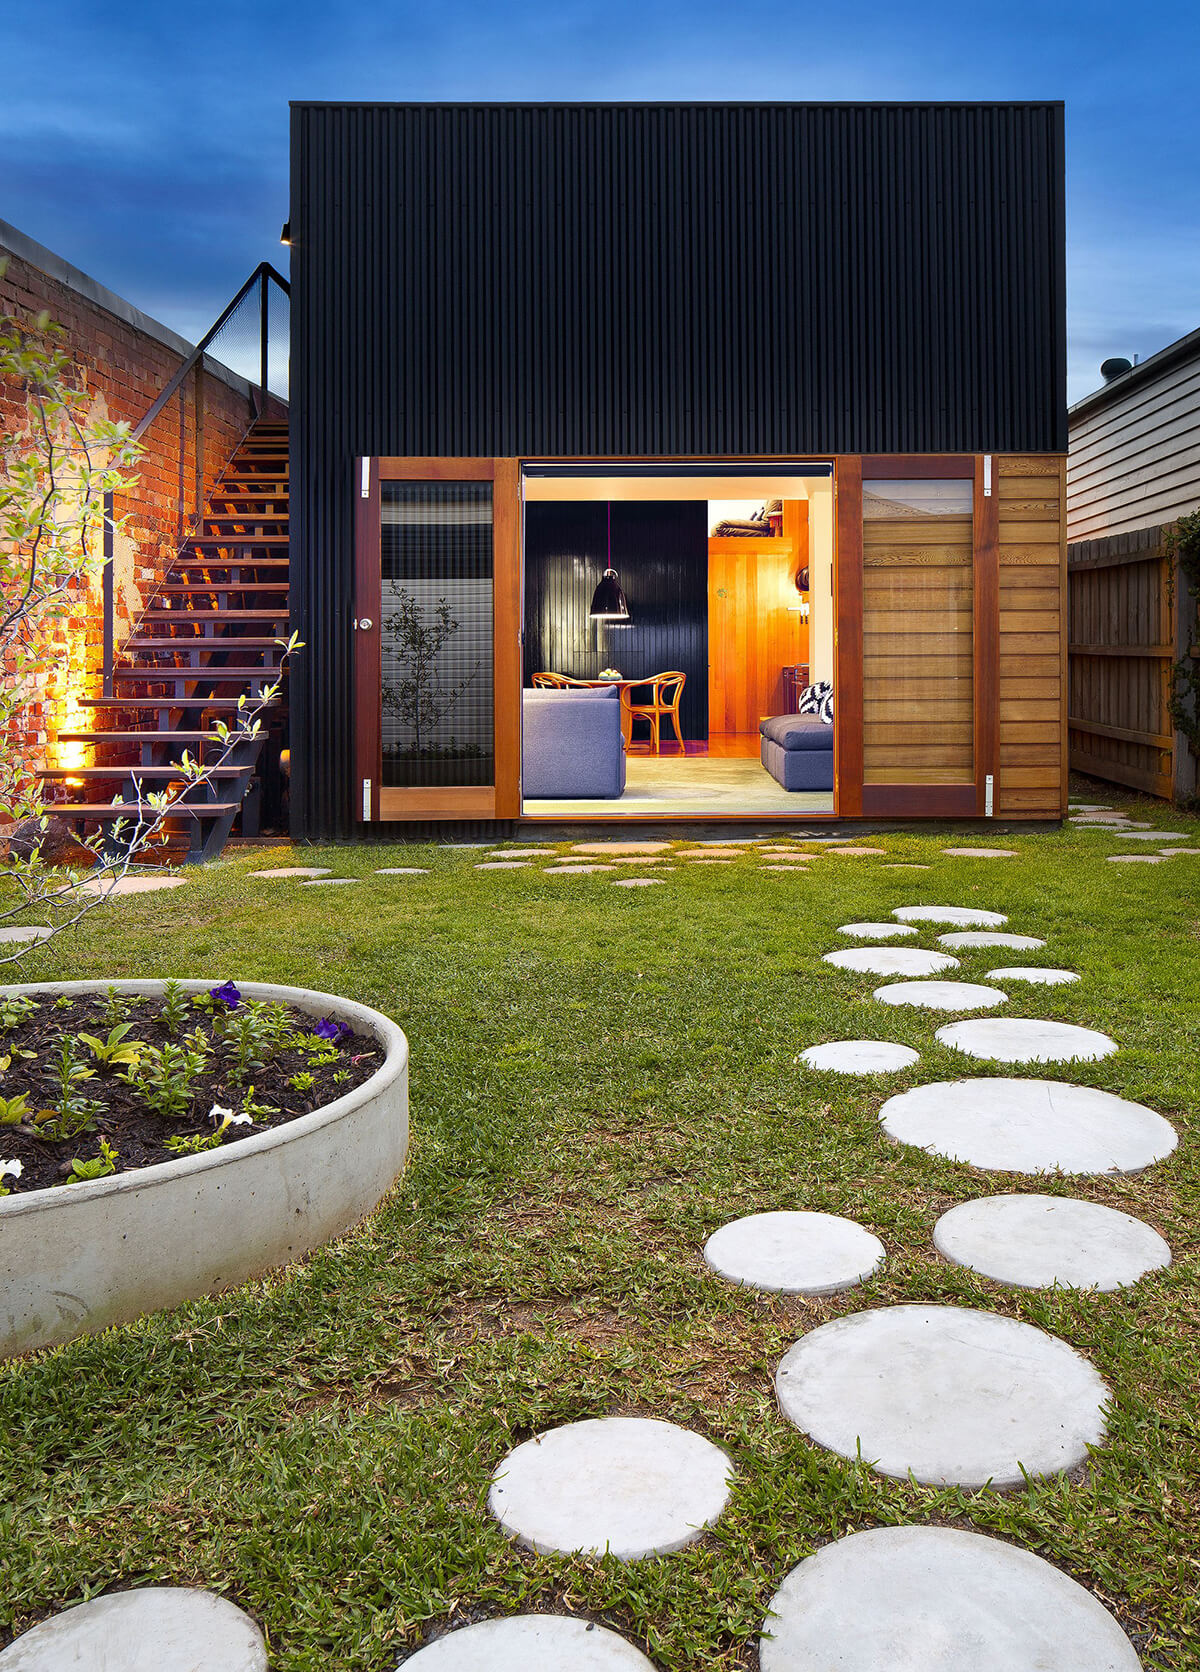 25 Best Garden Path and Walkway Ideas and Designs for 2017 on Backyard Walkway Ideas id=46791